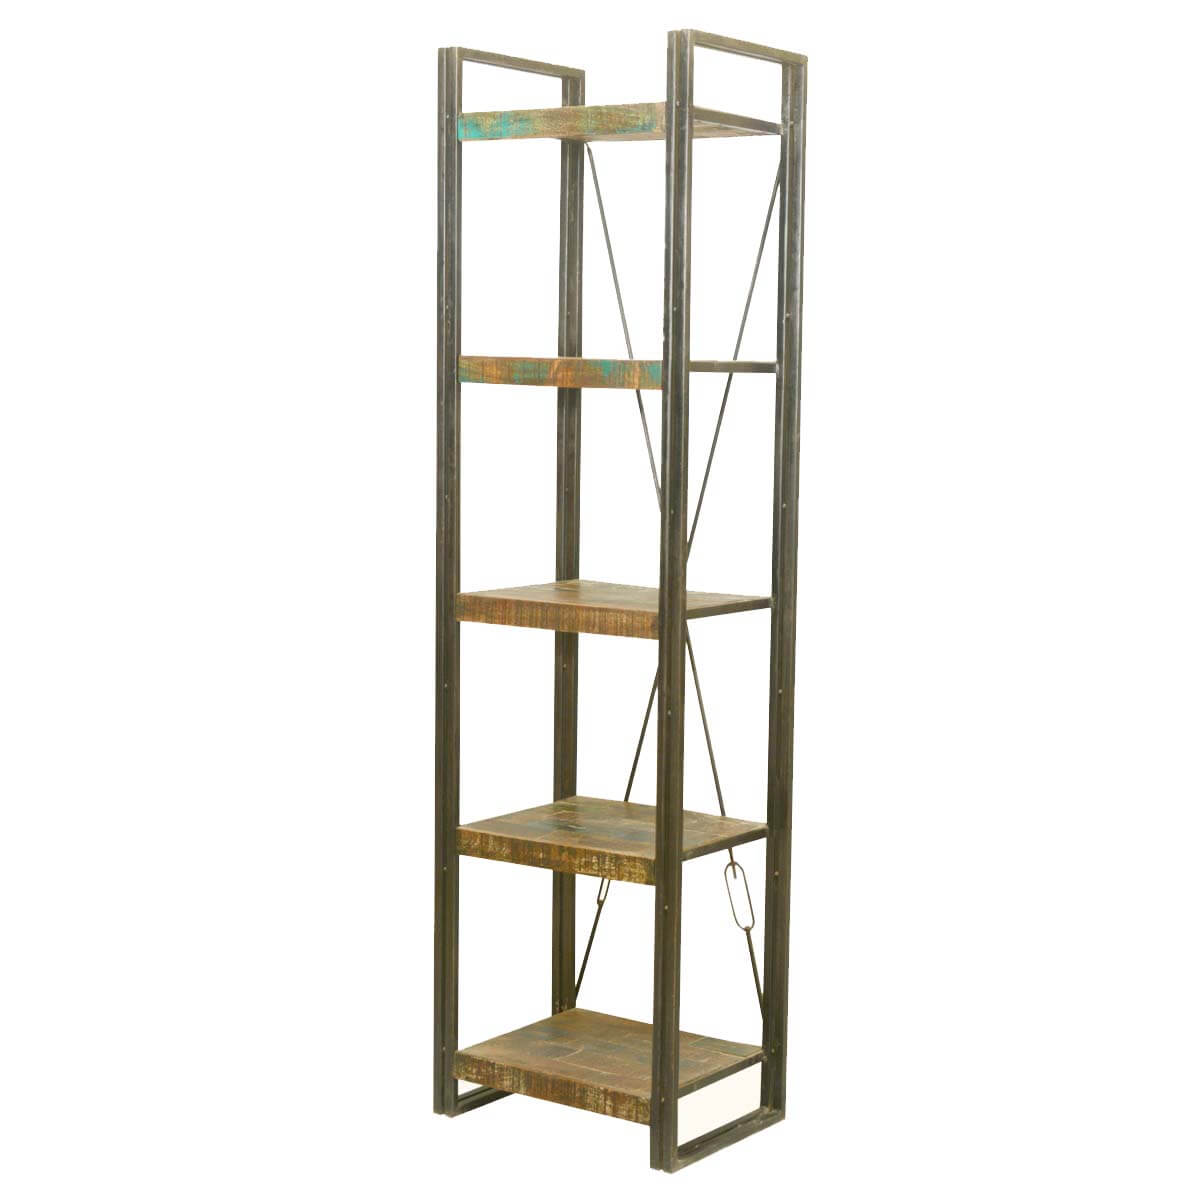 Foxfield 5 Open Shelf Rustic Reclaimed Wood Etagere Bookcase